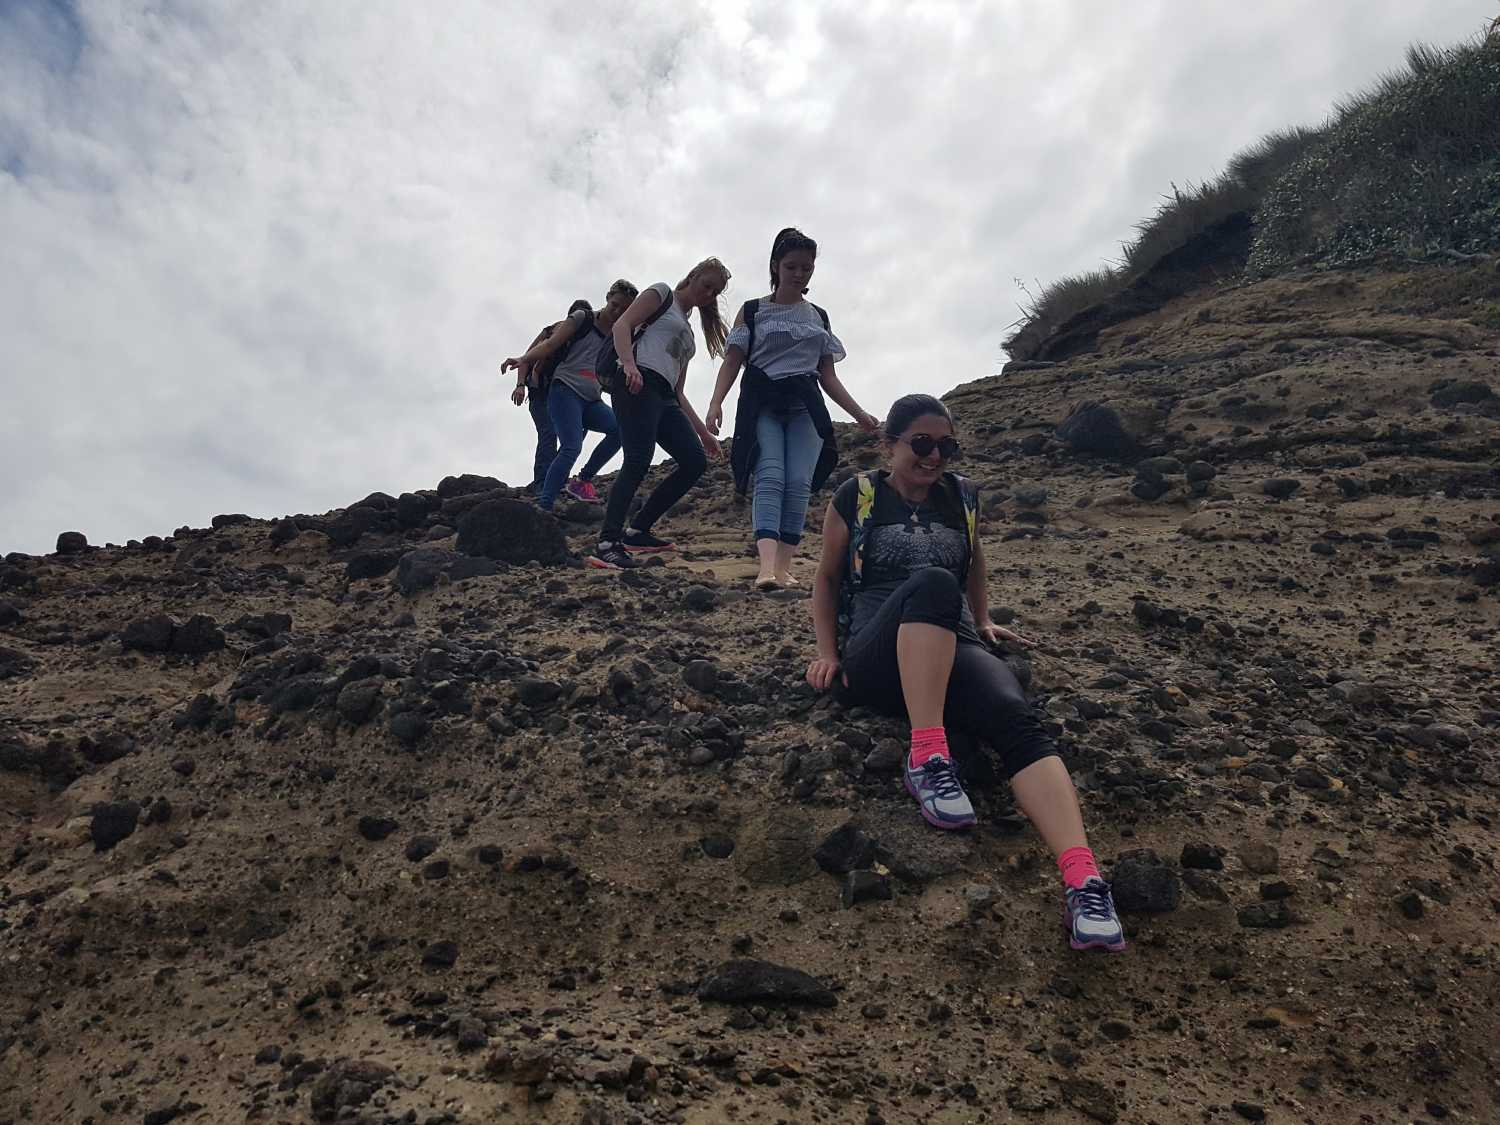 Group rock scrambling at Piha Beach